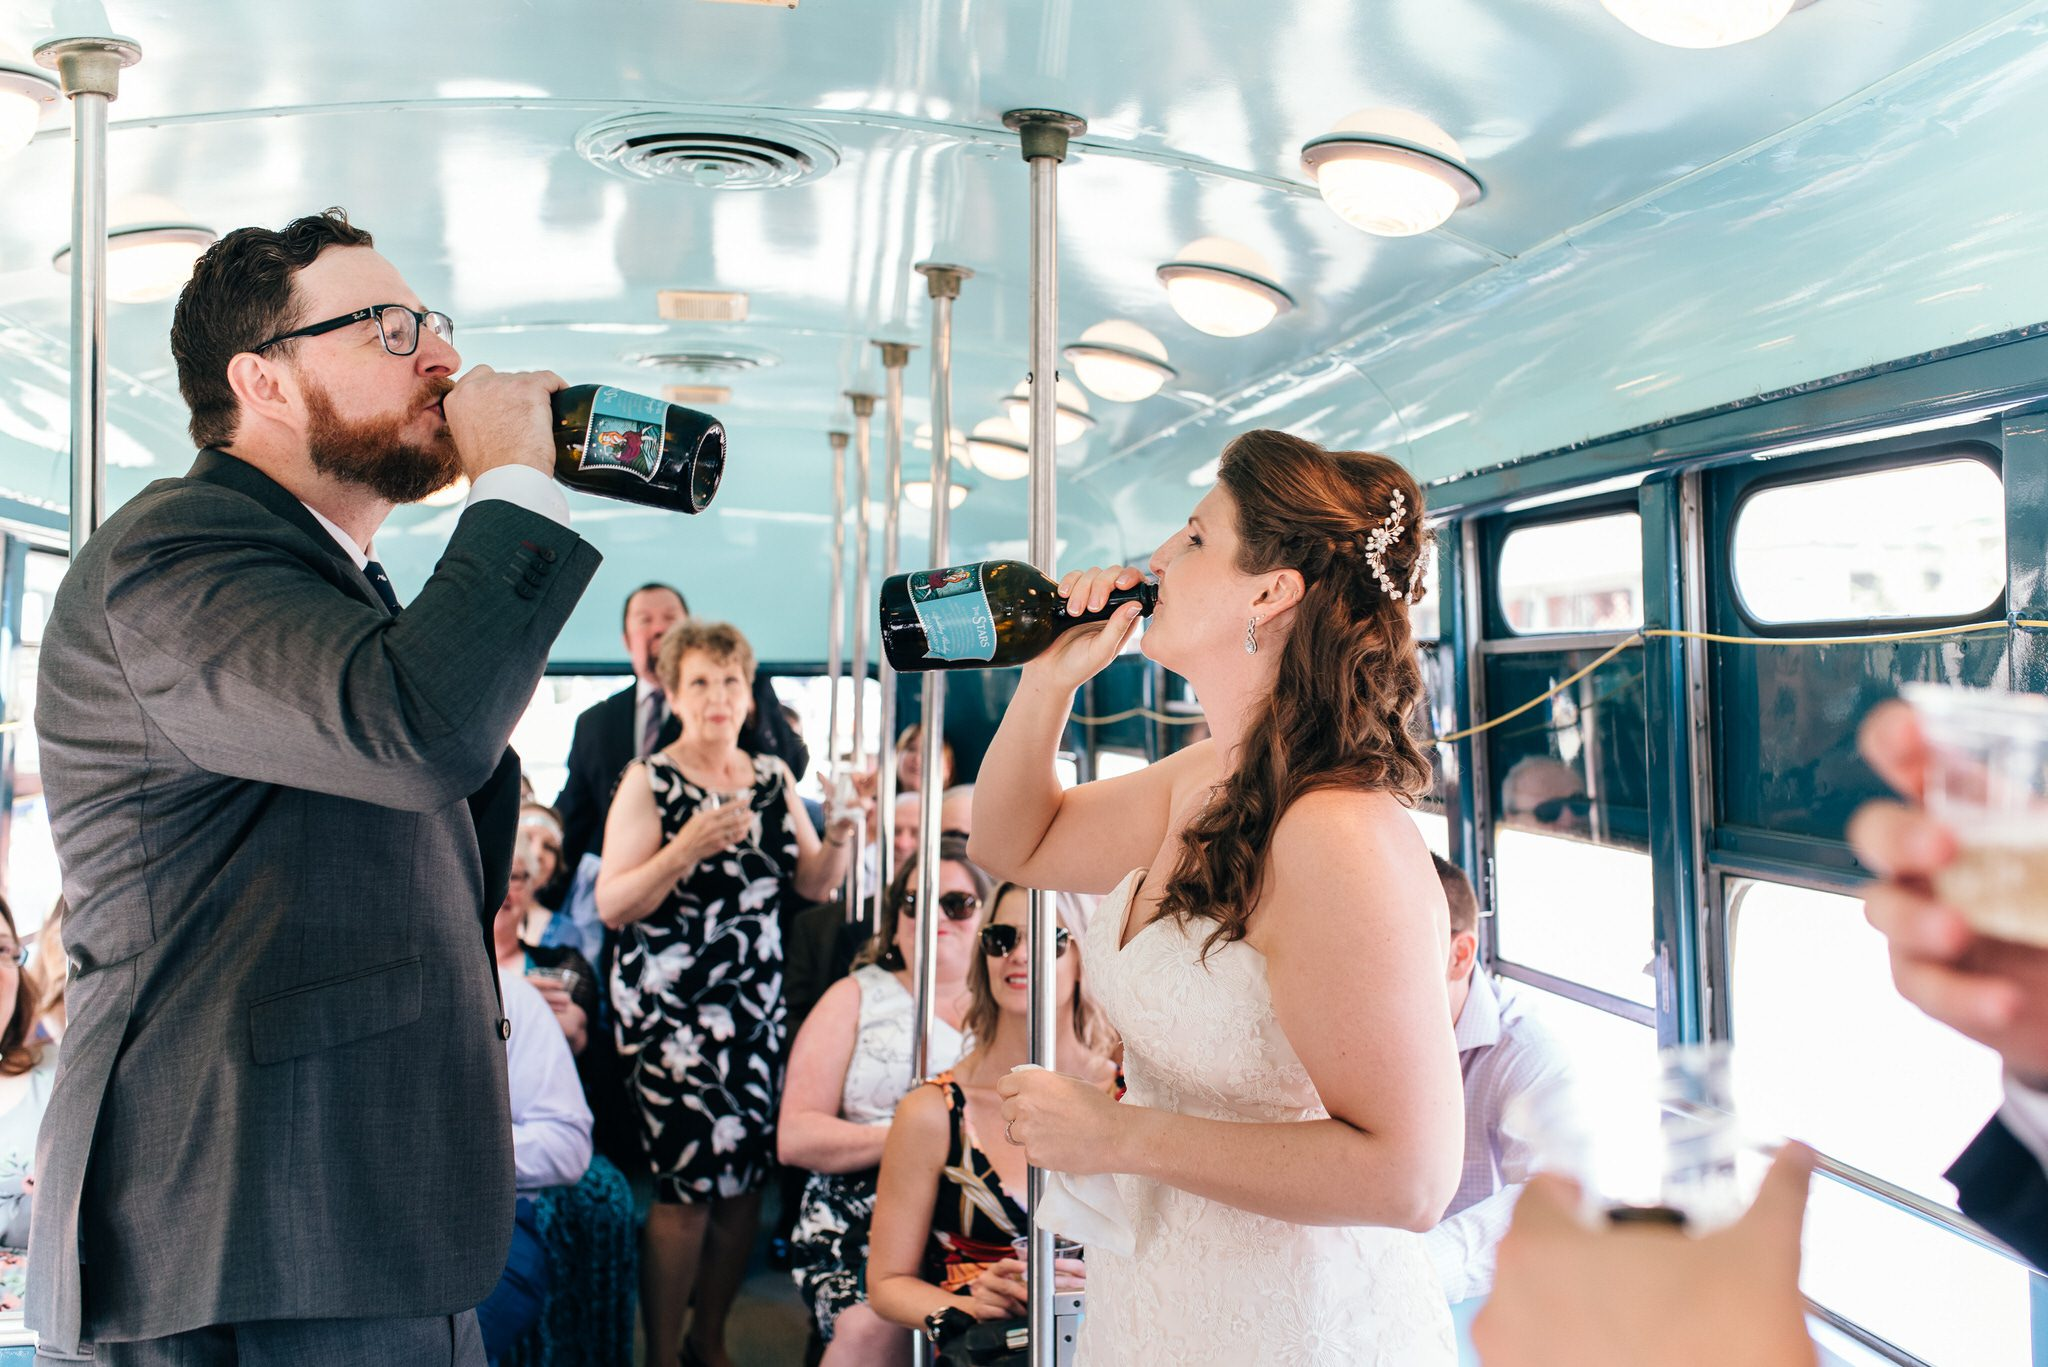 The bride and groom drink from their bottles of bubbly to celebrate their Vintage Toronto Streetcar Wedding Ceremony